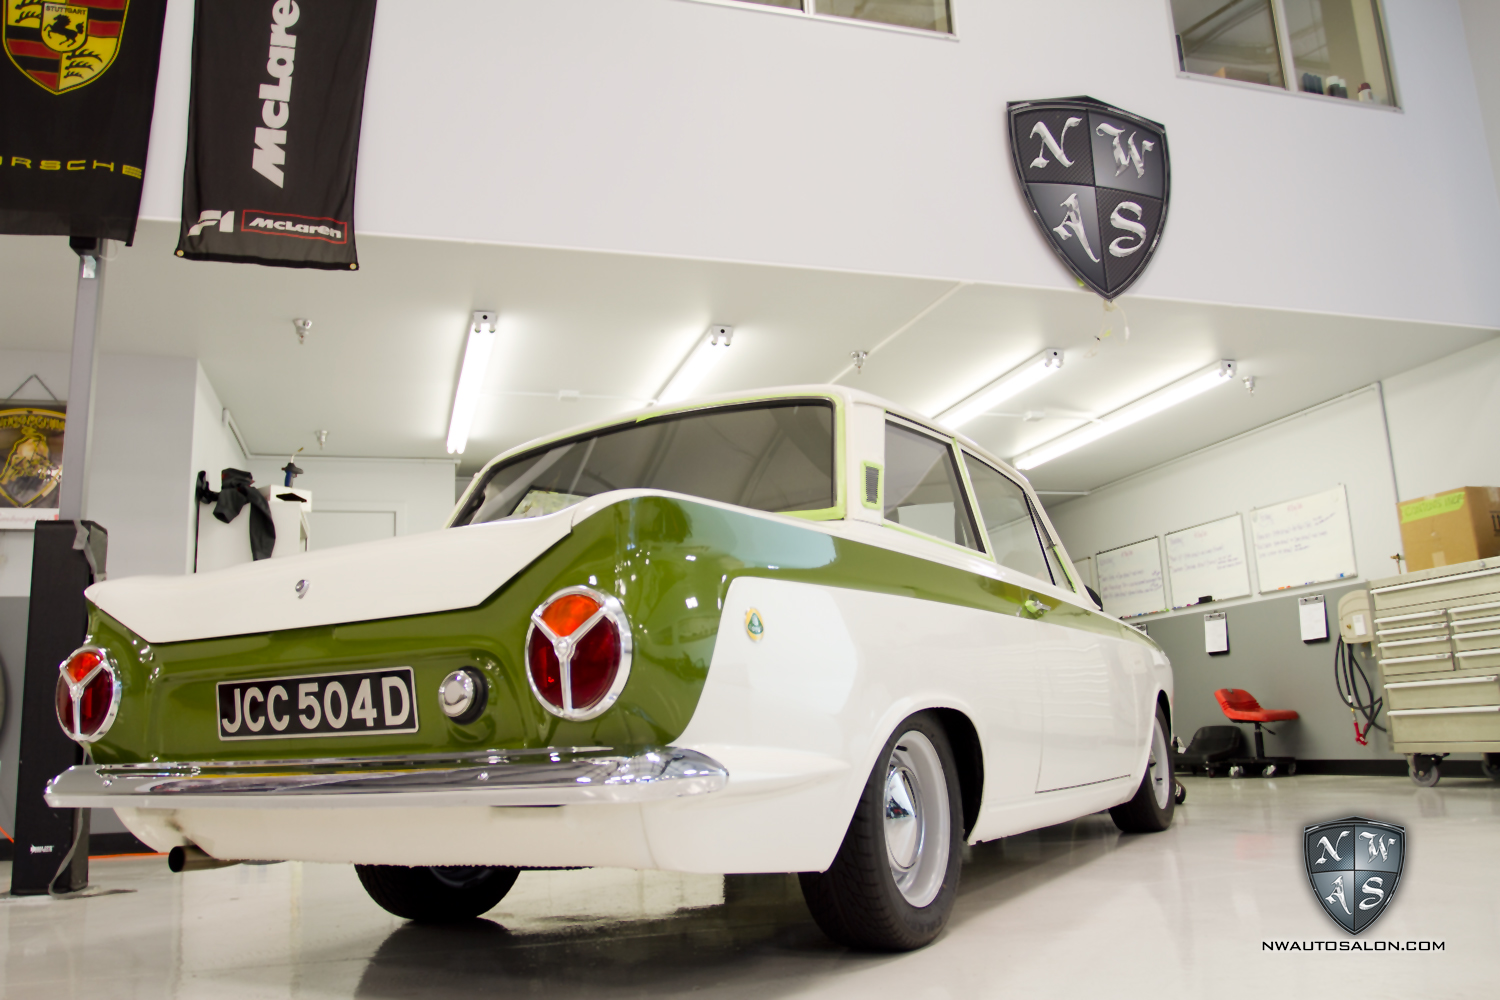 Mill Creek Auto Detailing NorthWest Auto Salon Motoring Unlimited Lotus Cortina